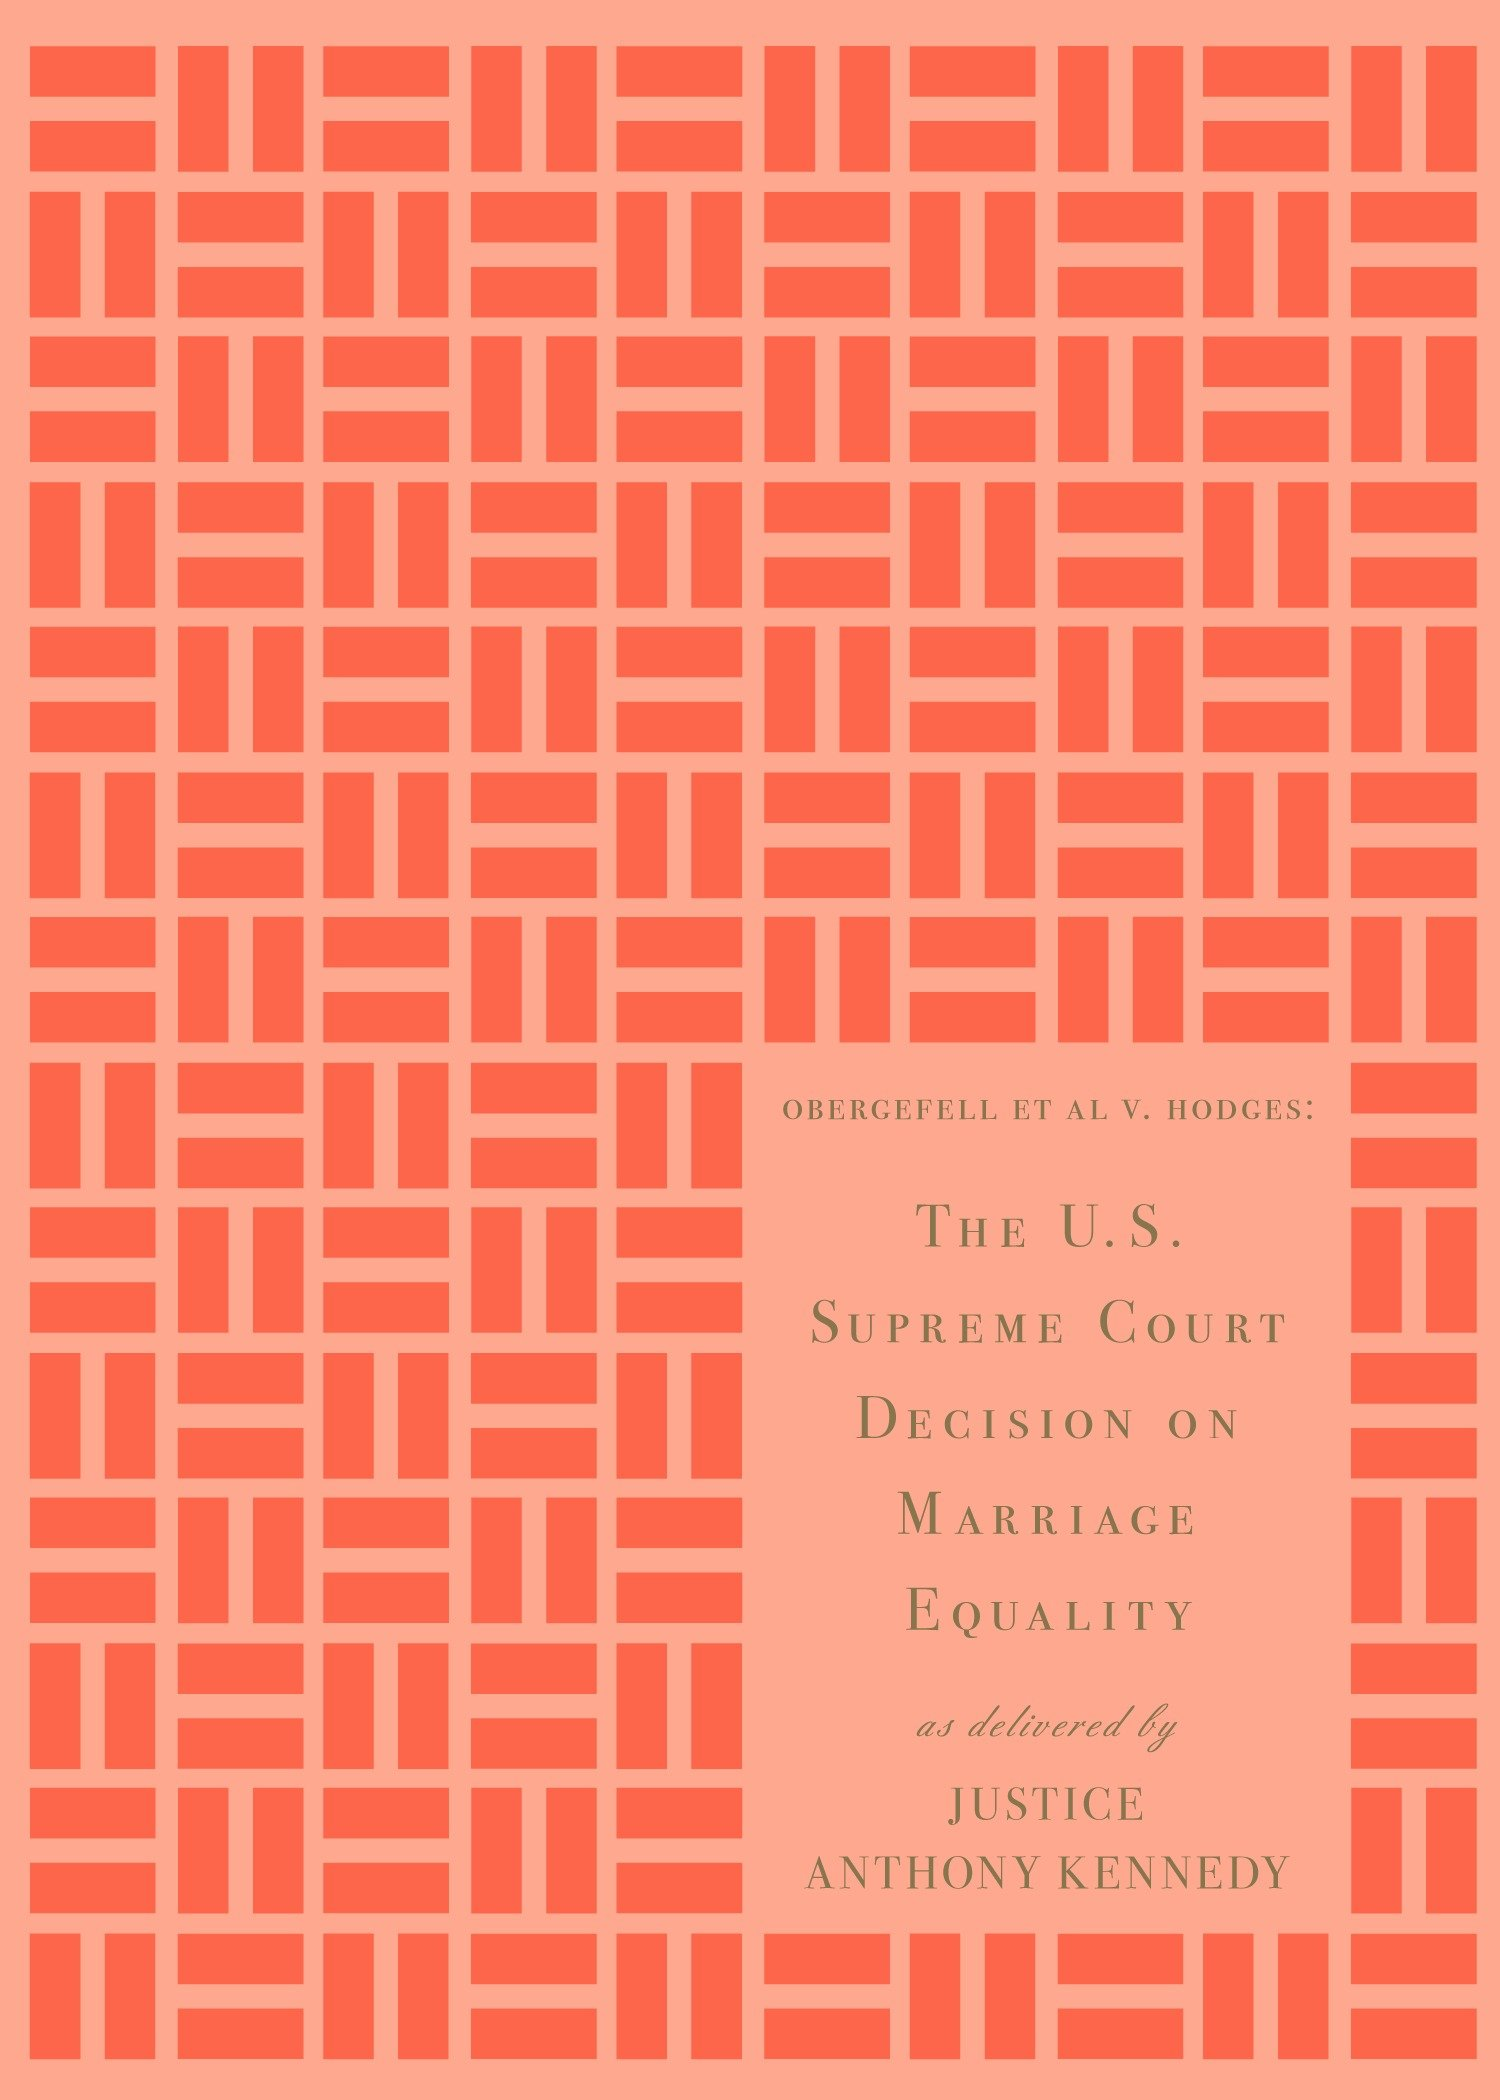 The U.S. Supreme Court Decision on Marriage Equality, Gift Edition